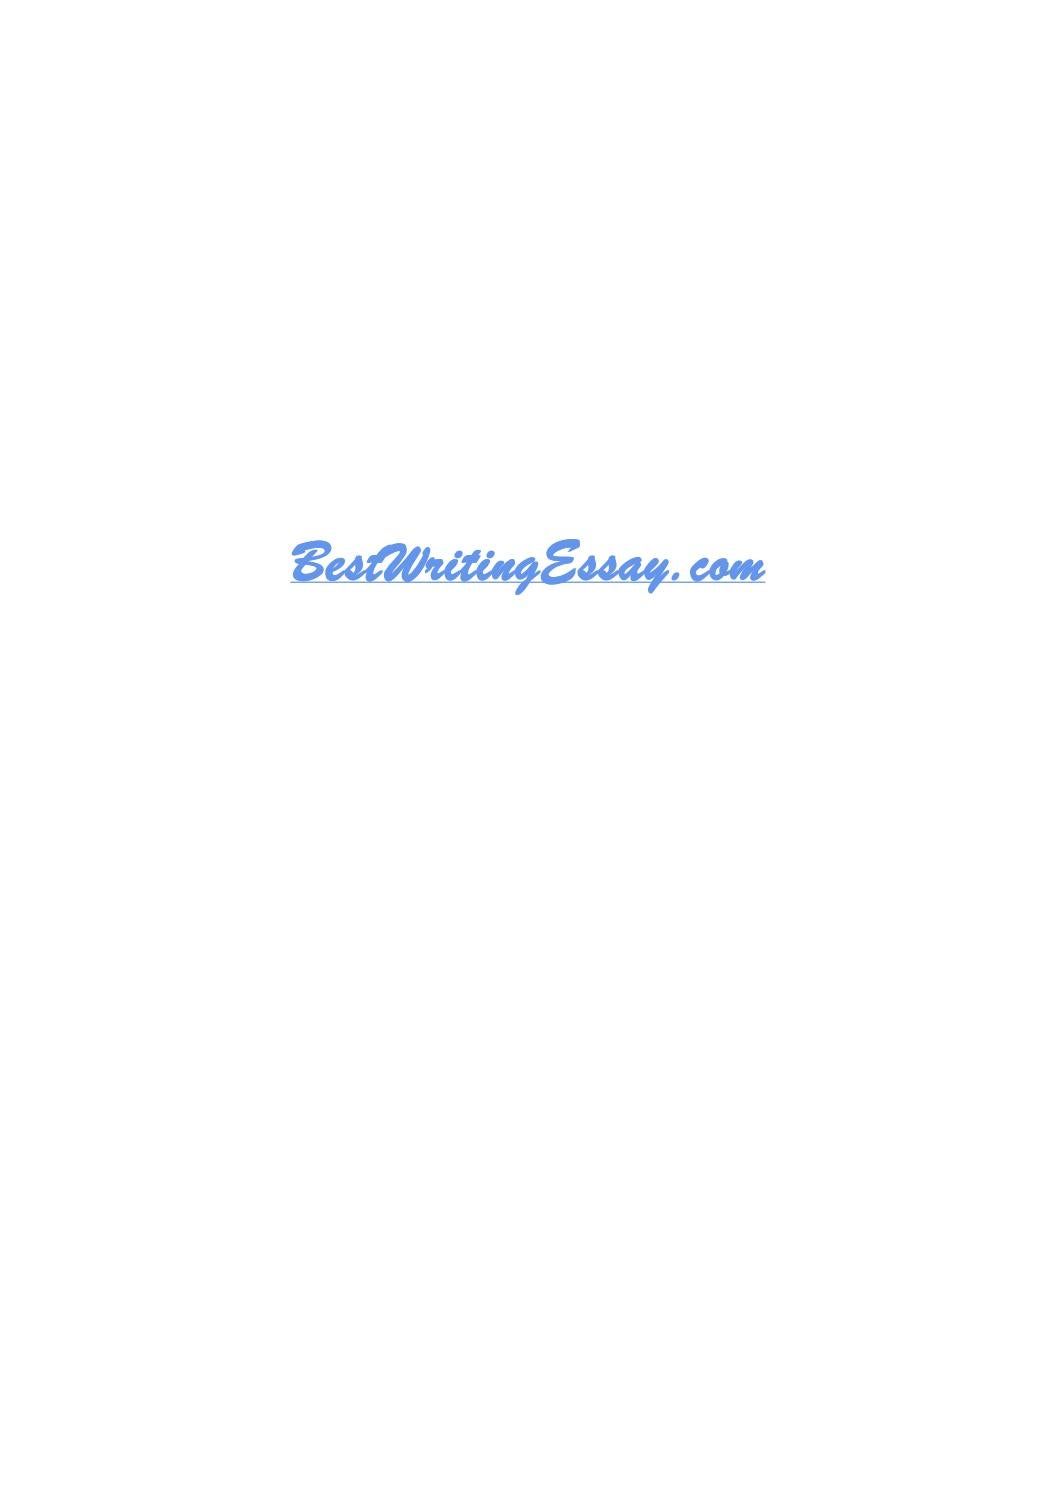 Cheap essays writers sites for masters